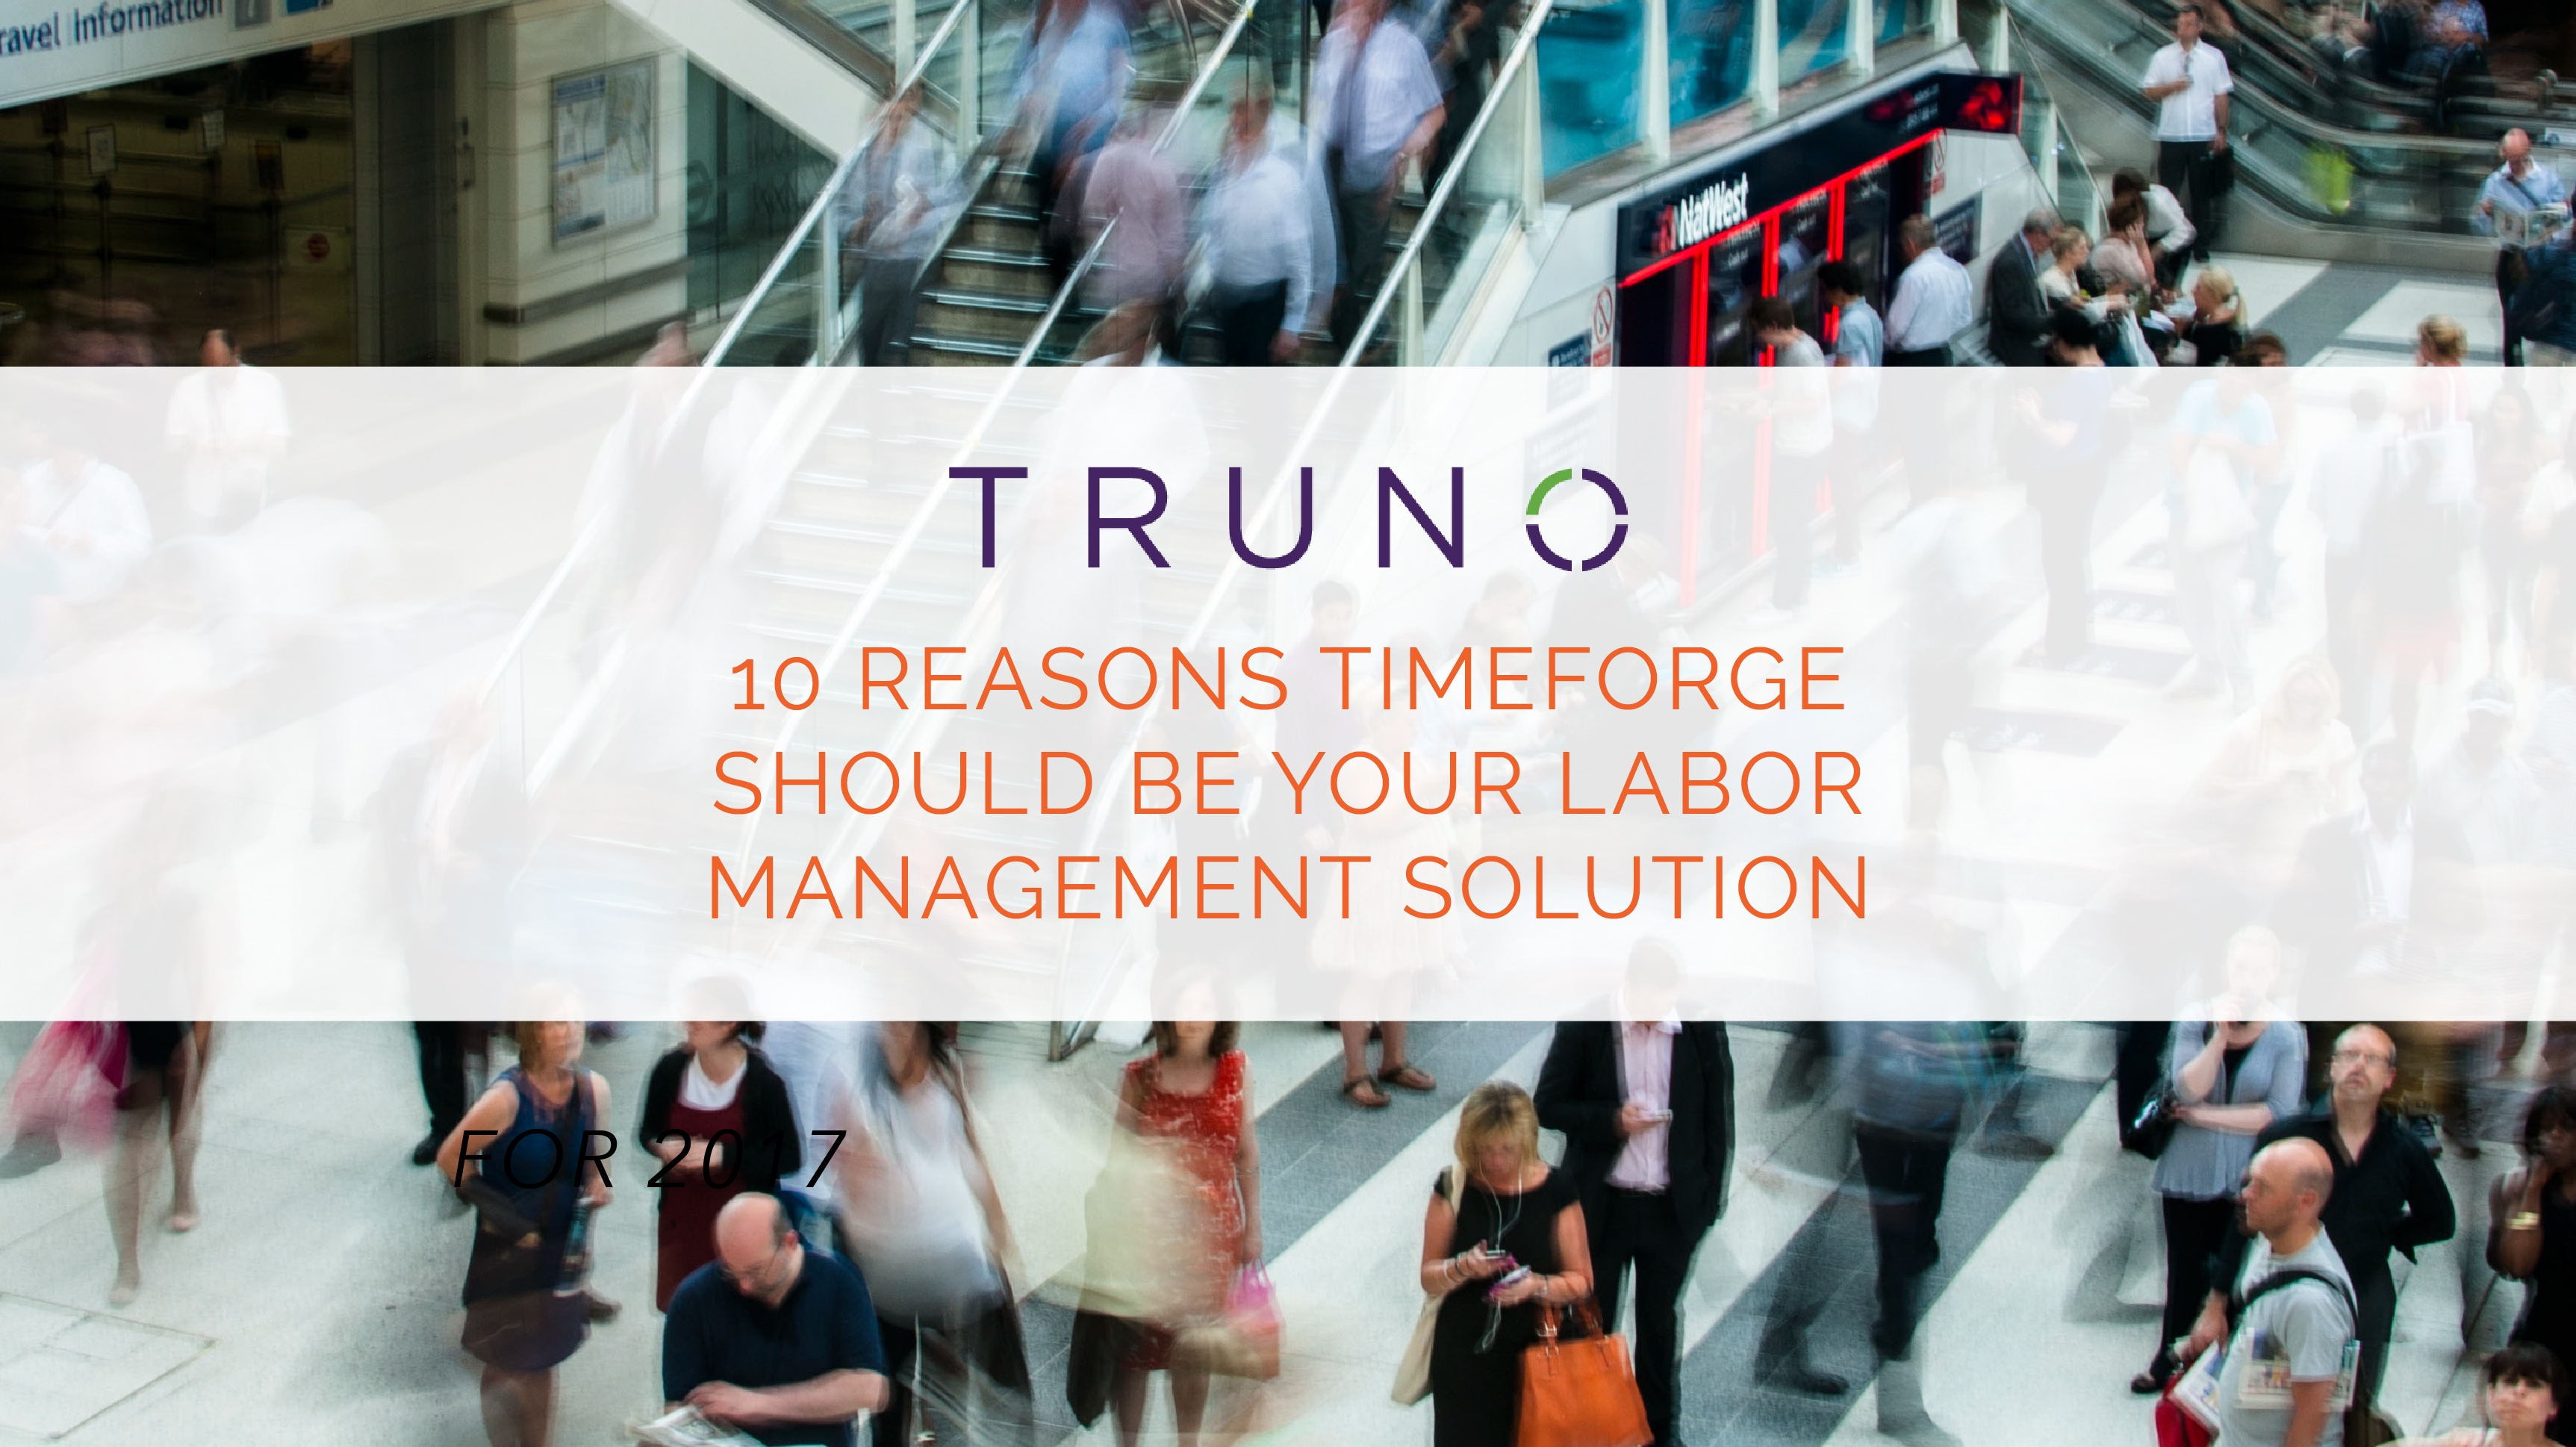 10 Reasons TimeForge Should Be Your Labor Management Solution for 2017 (1).jpg